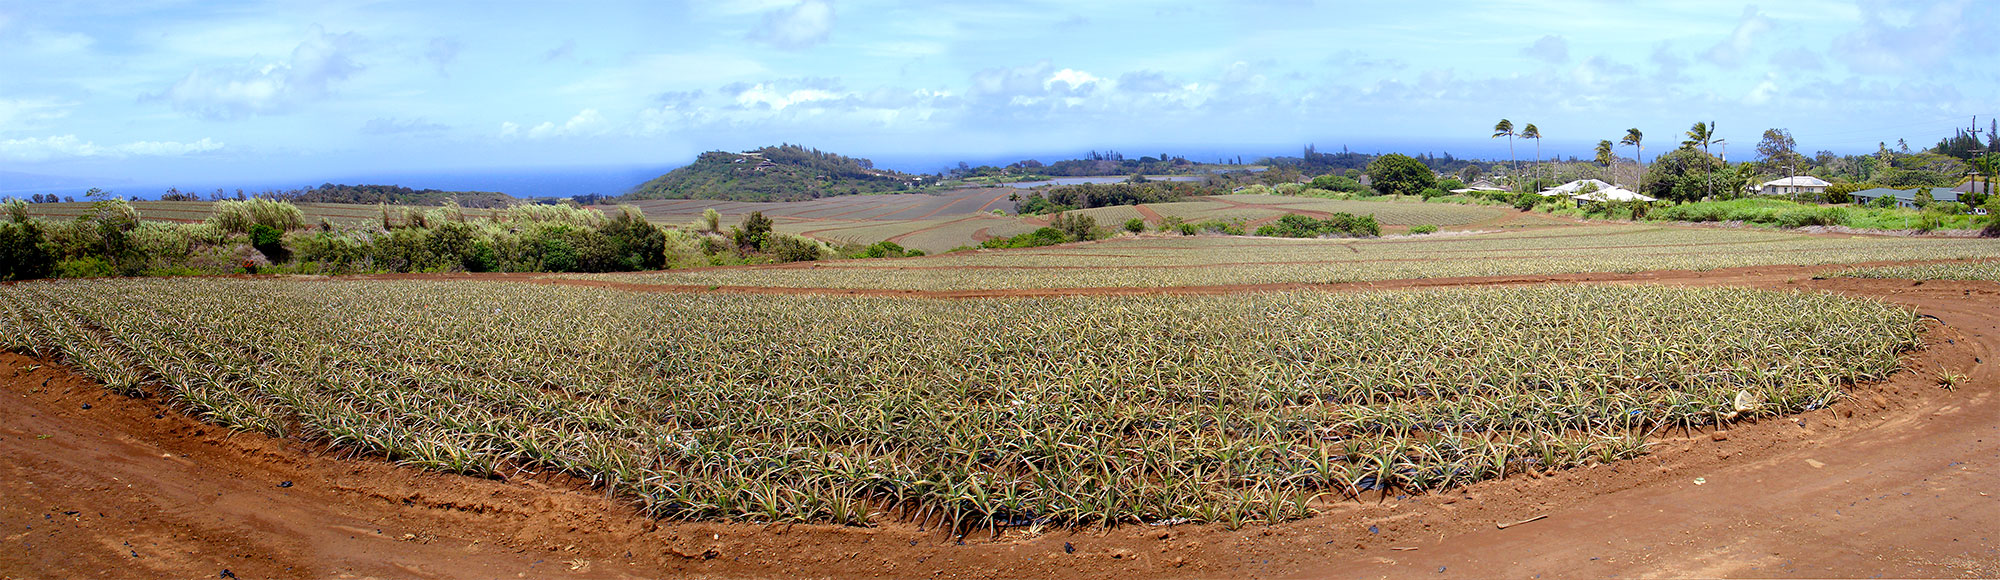 panorama of the pineapple fields